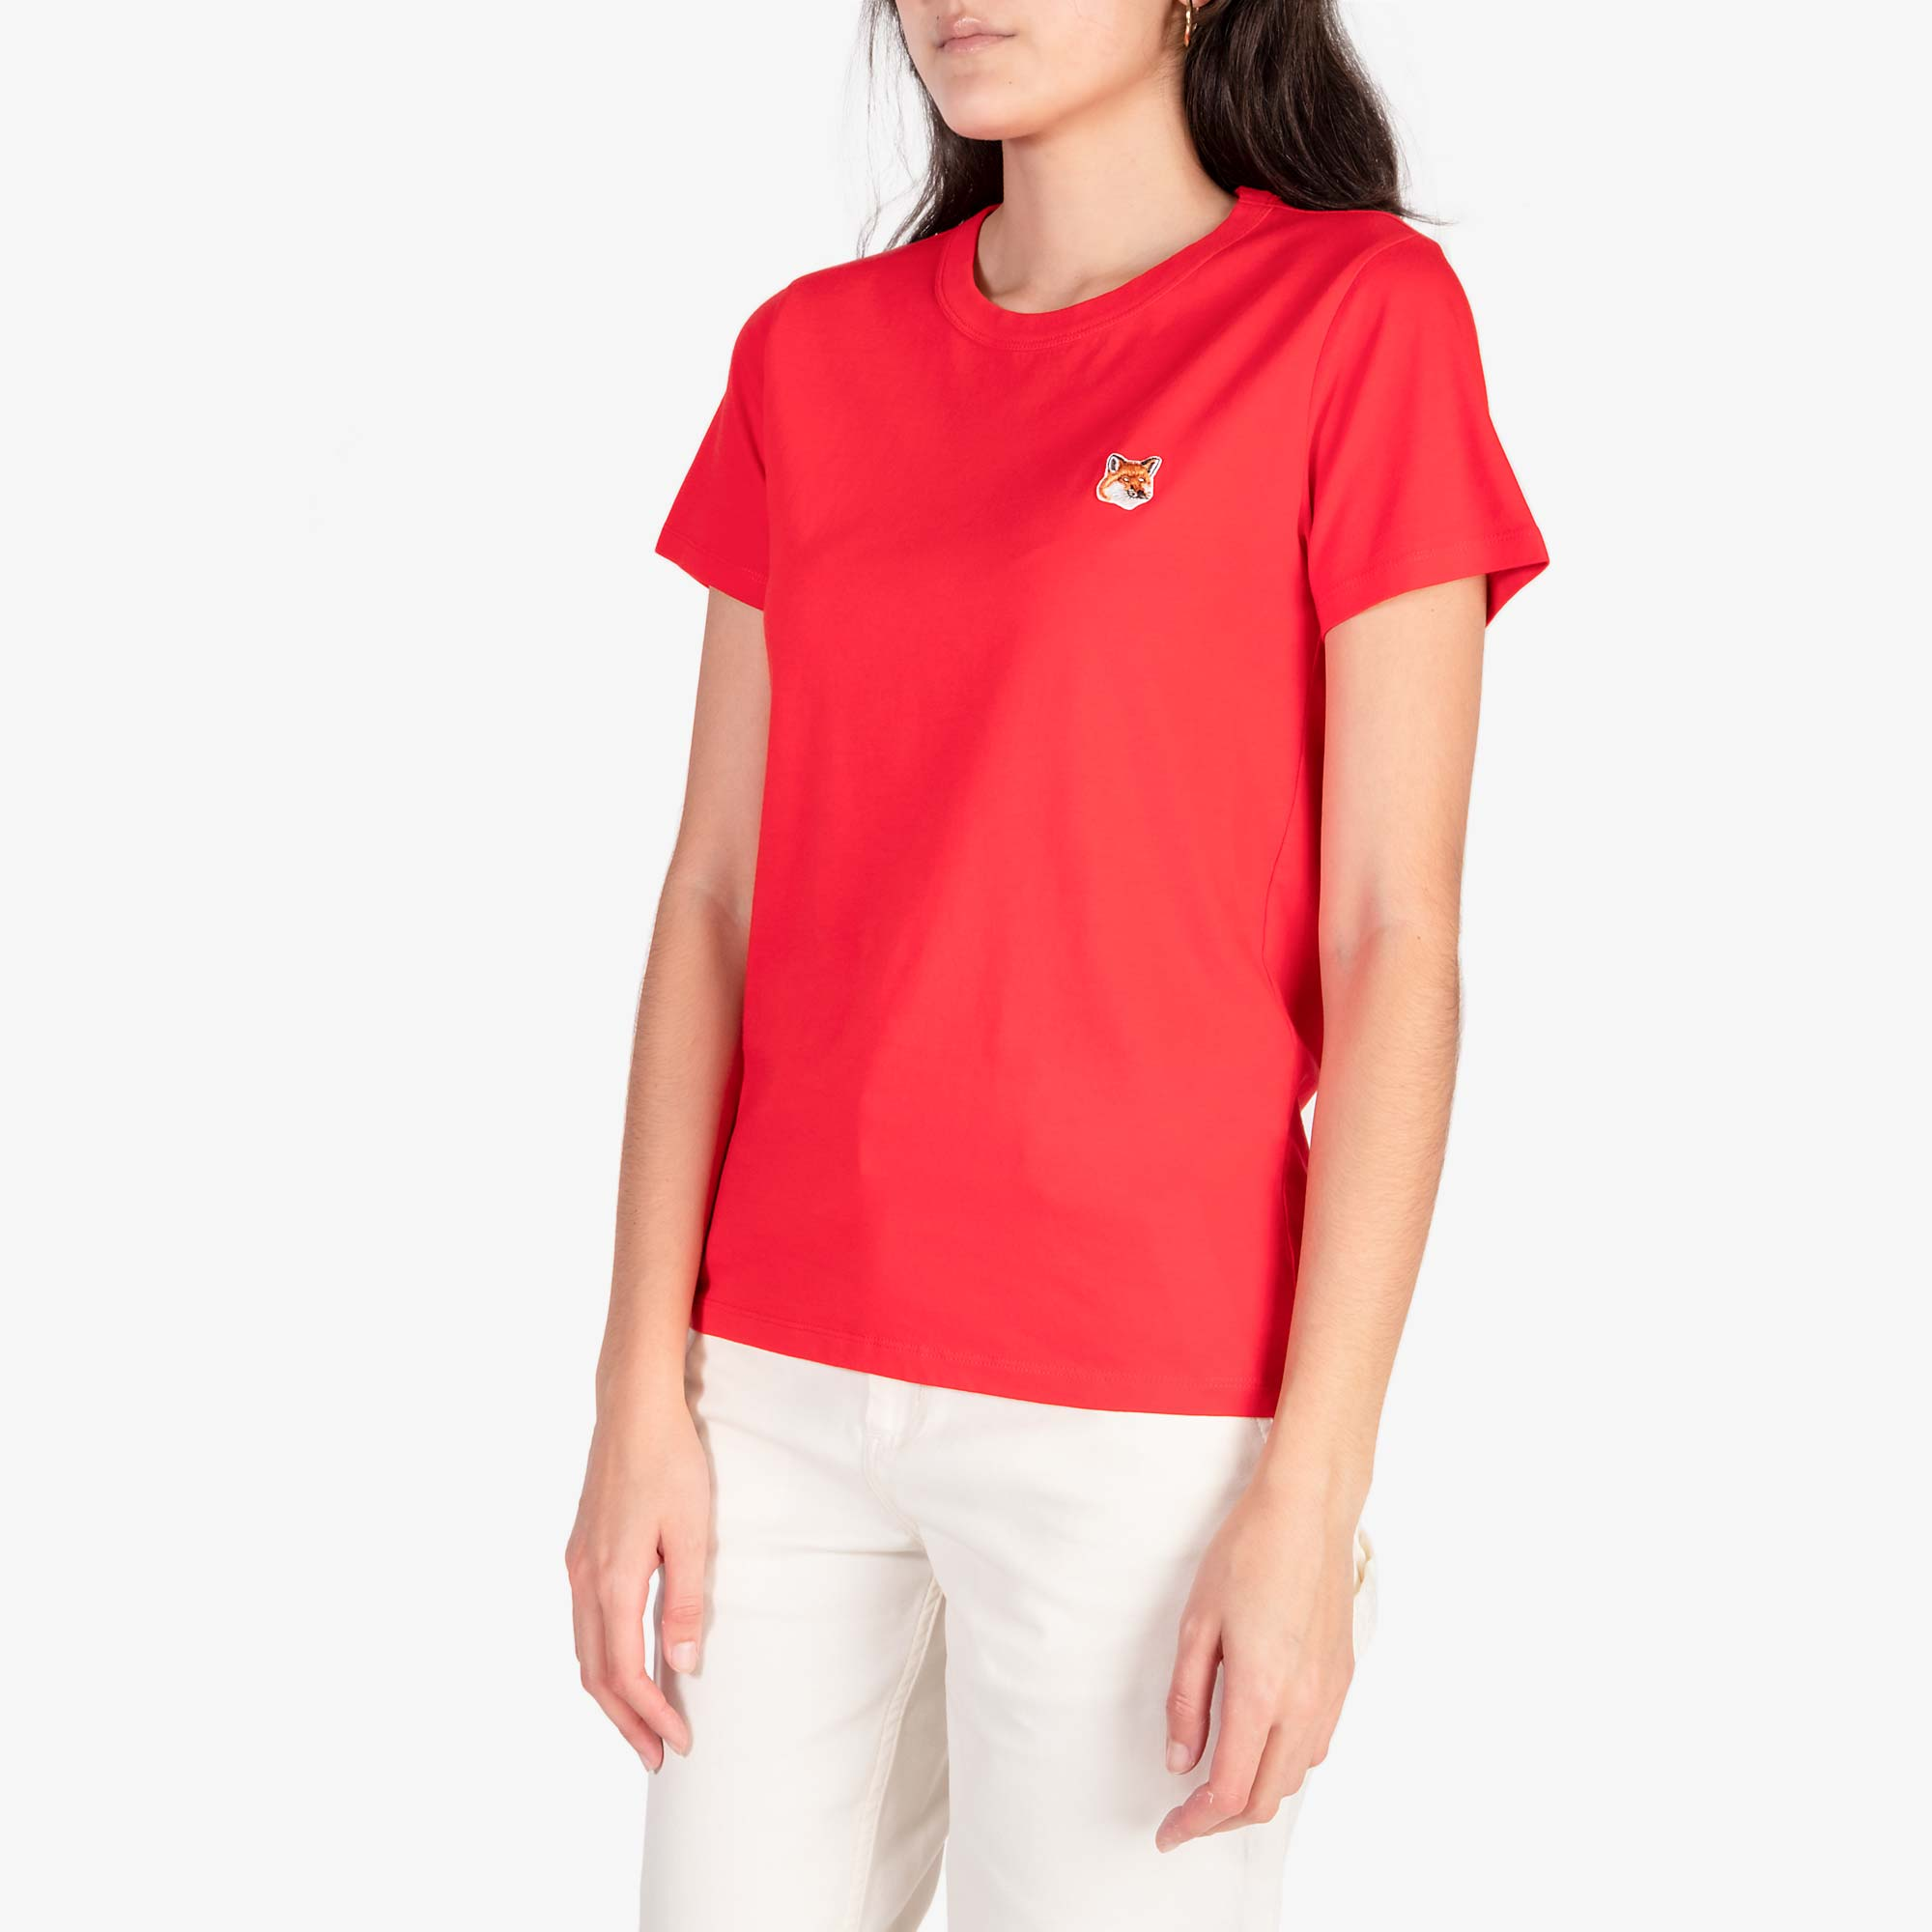 Maison Kitsune Women's Fox Head Patch Tee - Red 4